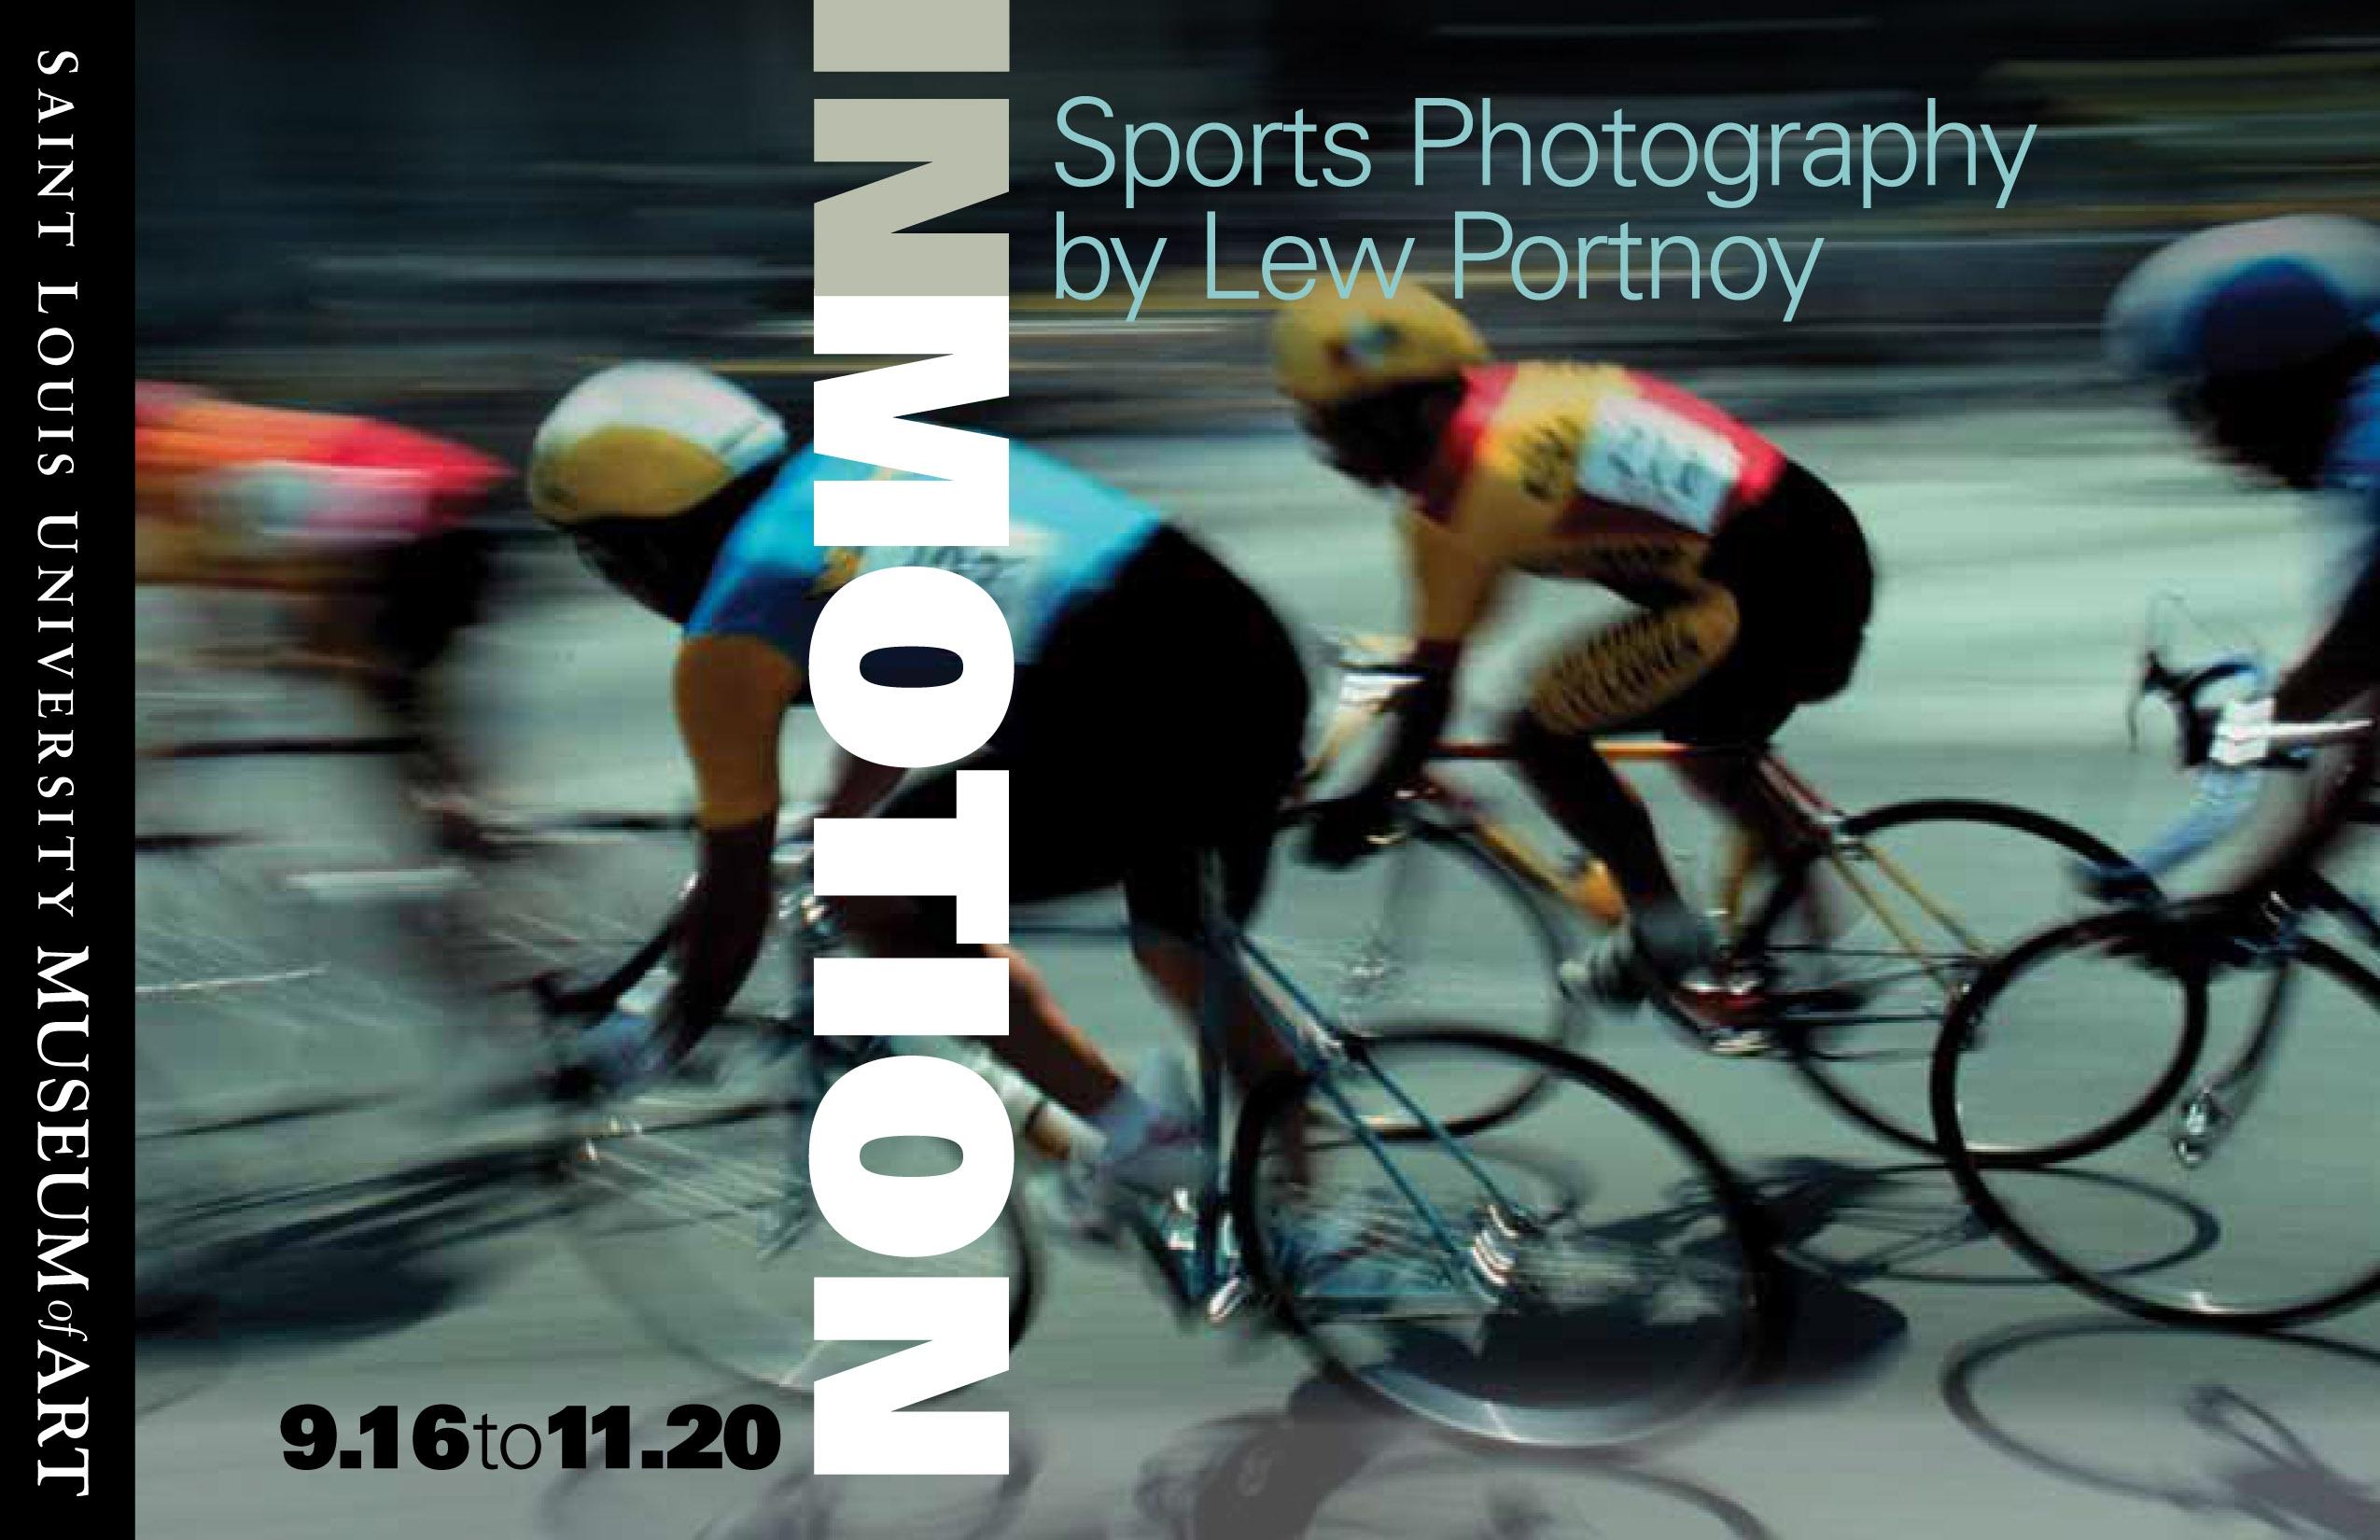 InMotion: Sports Photography by Lew Portnoy